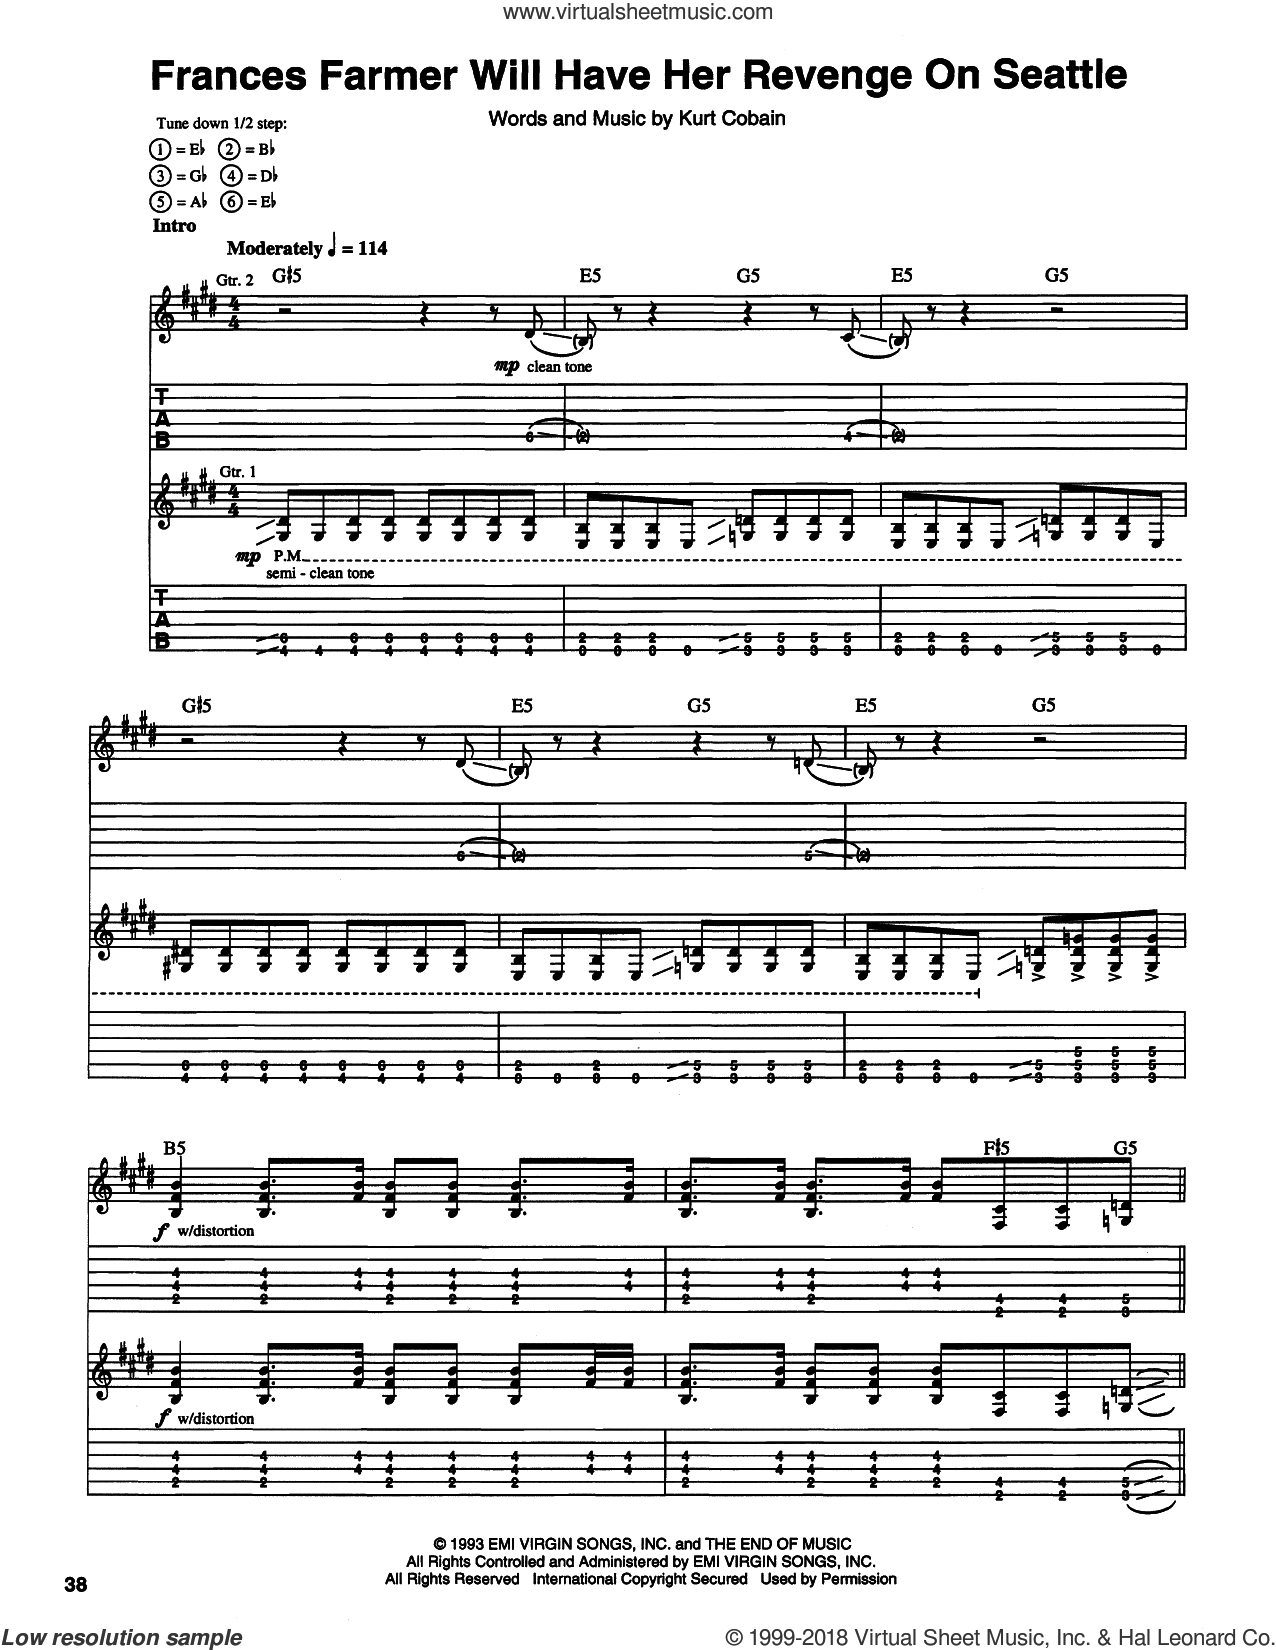 Frances Farmer Will Have Her Revenge On Seattle sheet music for guitar (tablature) by Nirvana, intermediate guitar (tablature). Score Image Preview.